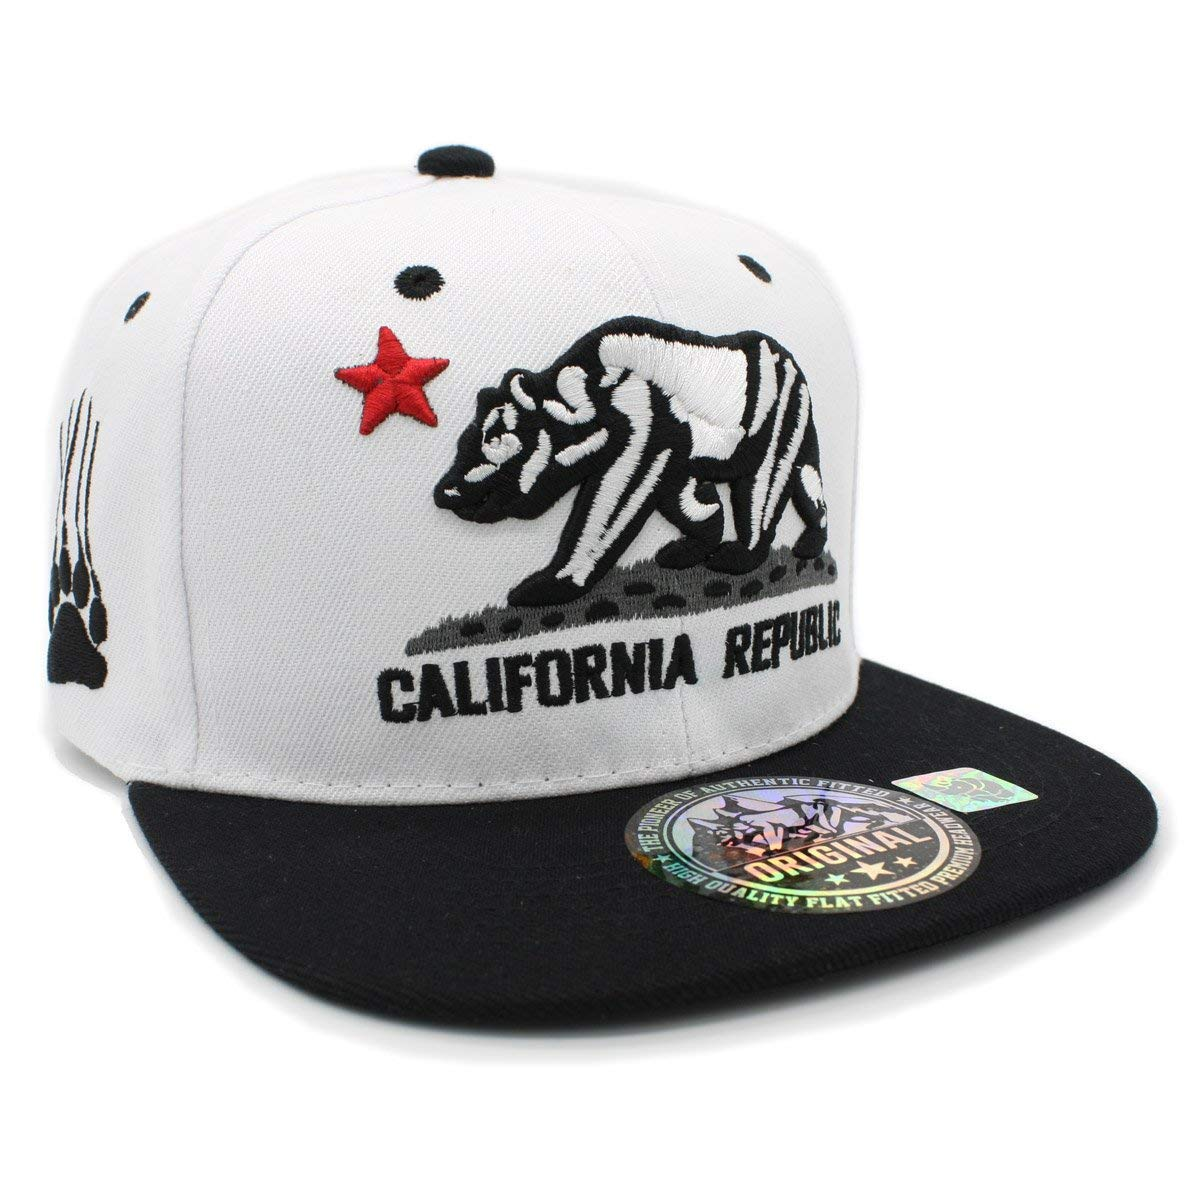 8403acafe0b38 Get Quotations · LAFSQ Embroidered California Republic Bear Claw Scratch Snapback  Cap